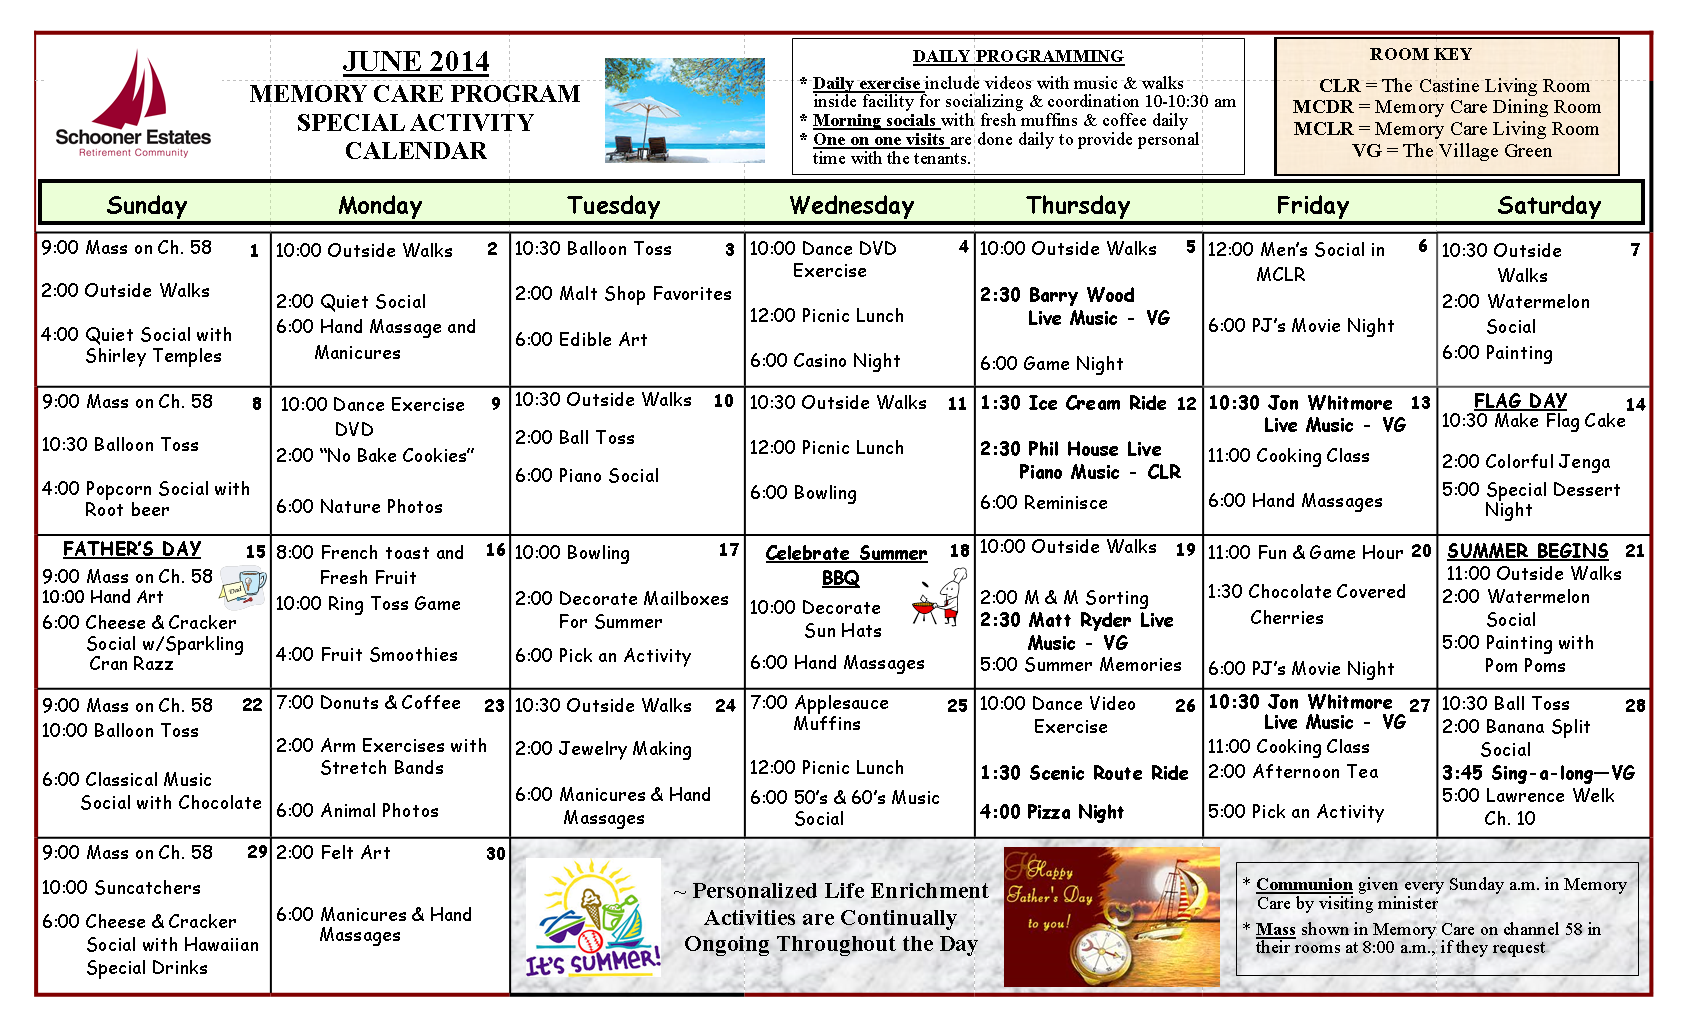 June 2014 Memory Care Activity Claendar